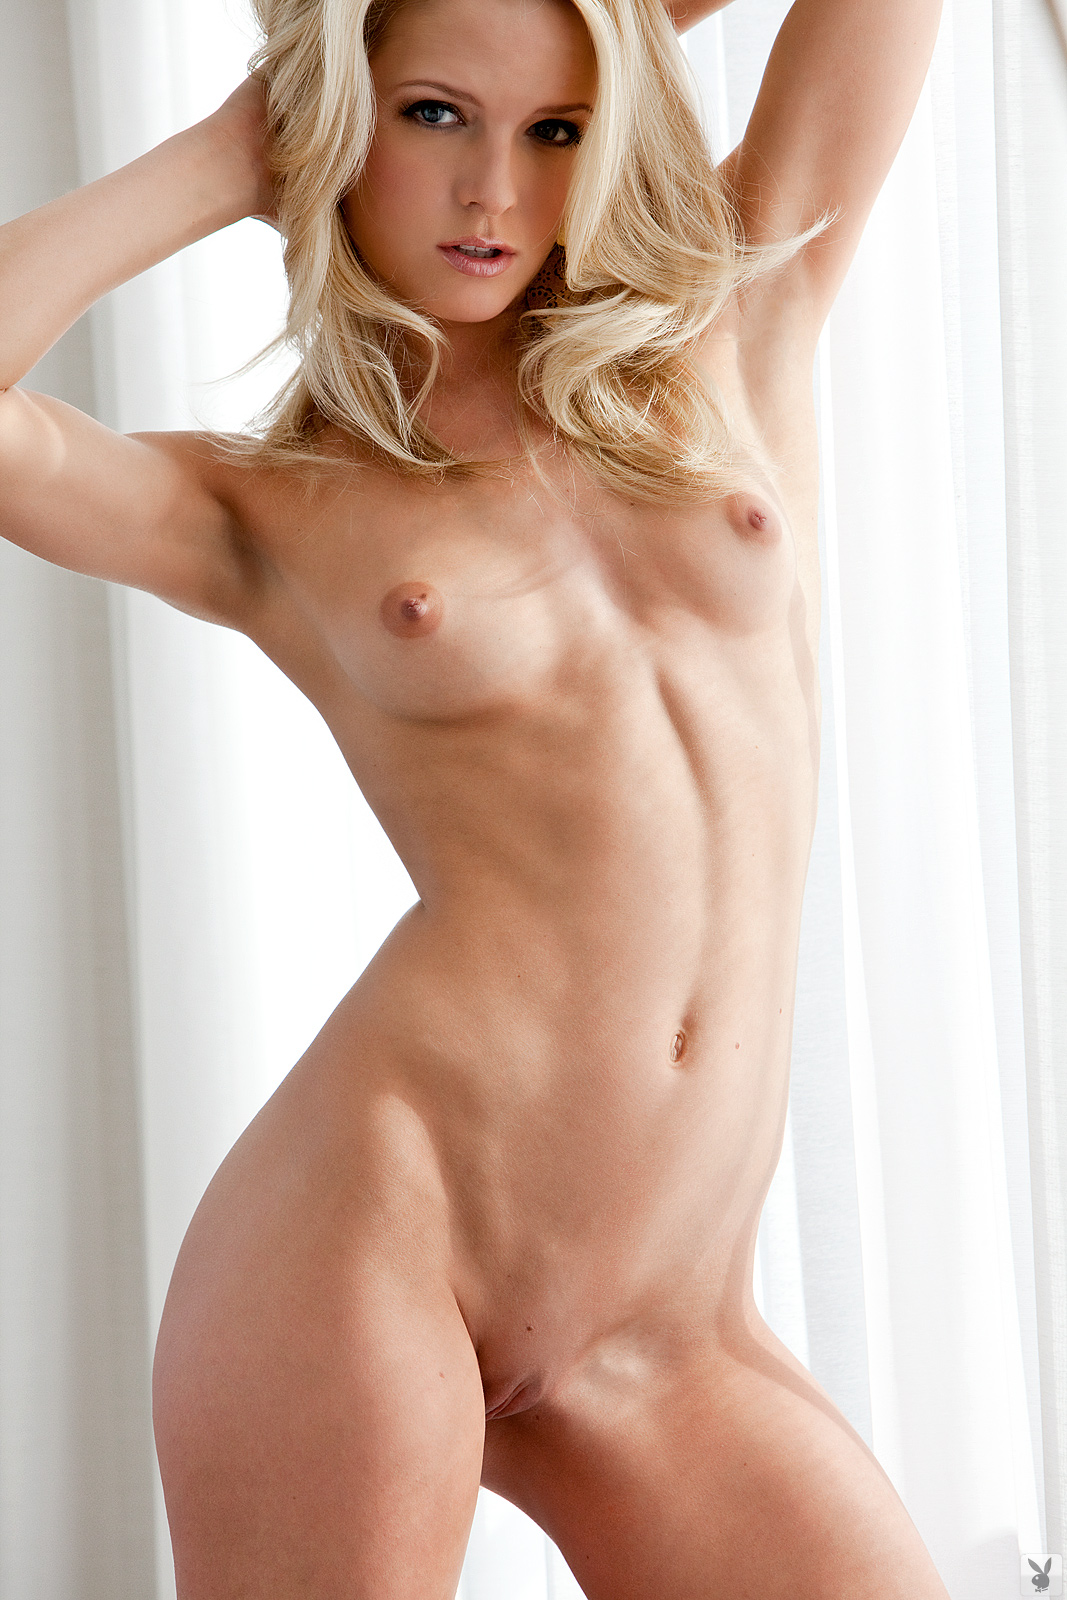 completely naked uncensored playboy girls